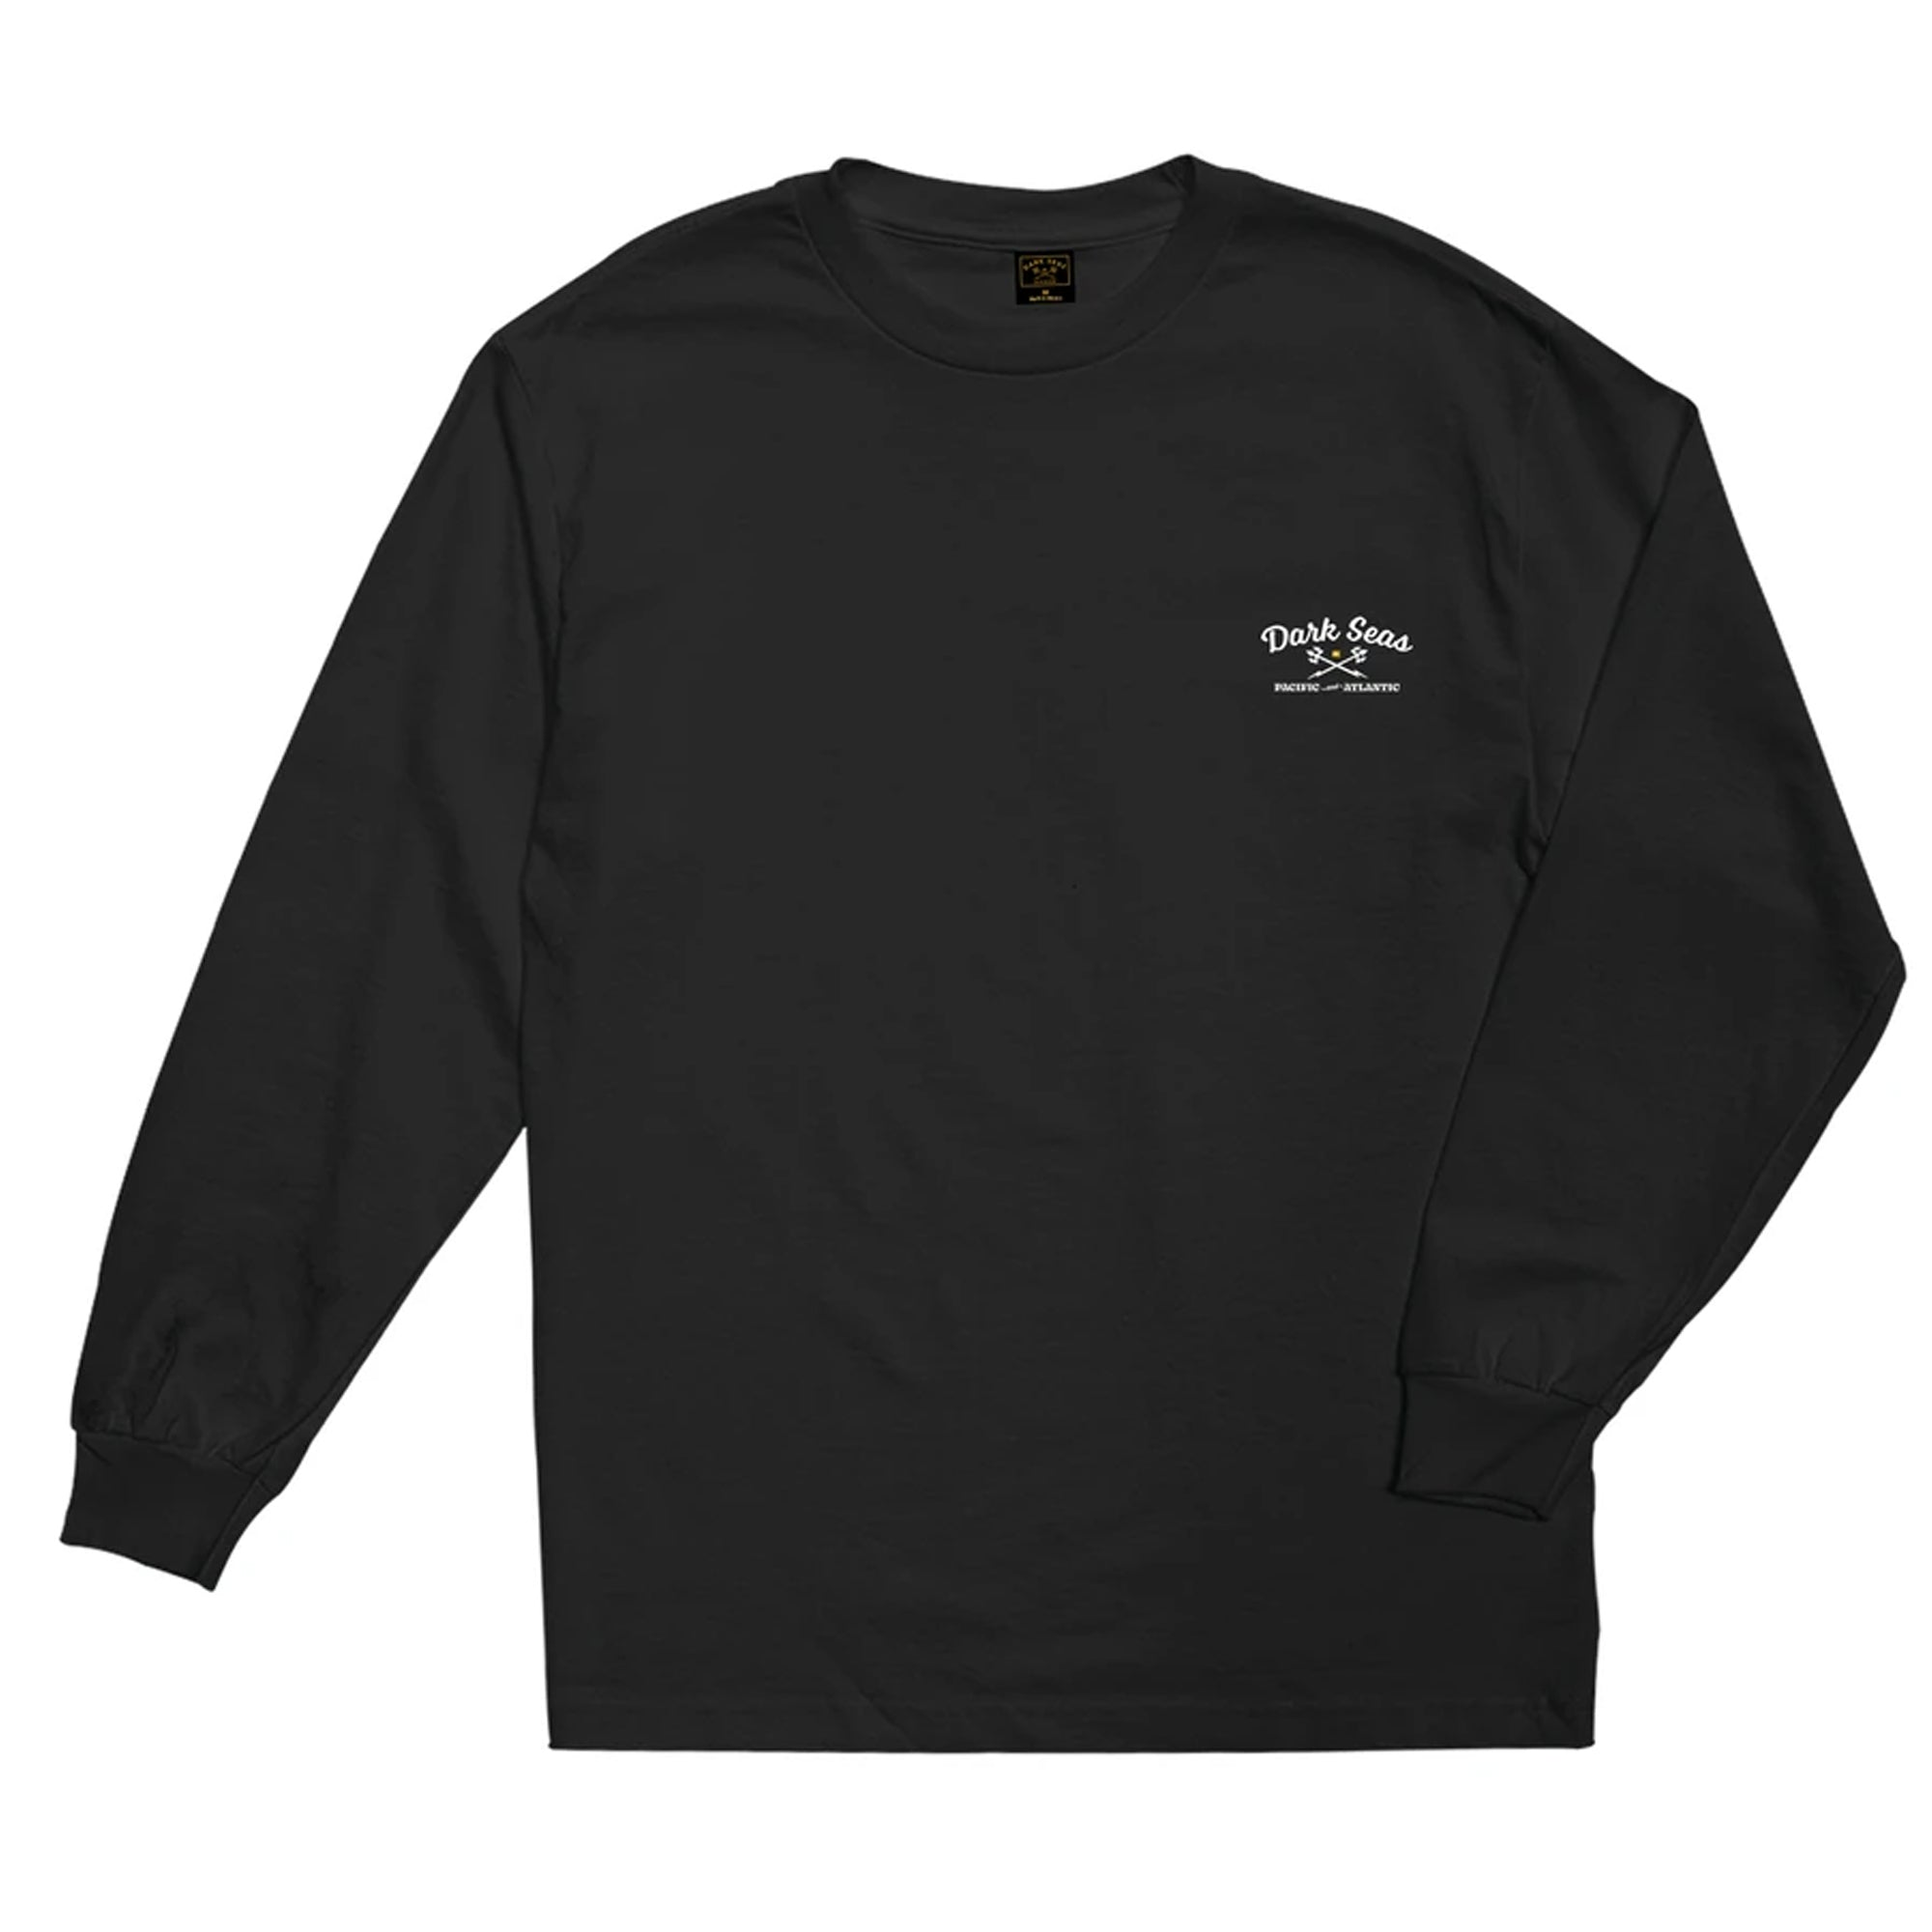 Dark Seas Brick & Mortar Men's L/S T-Shirt